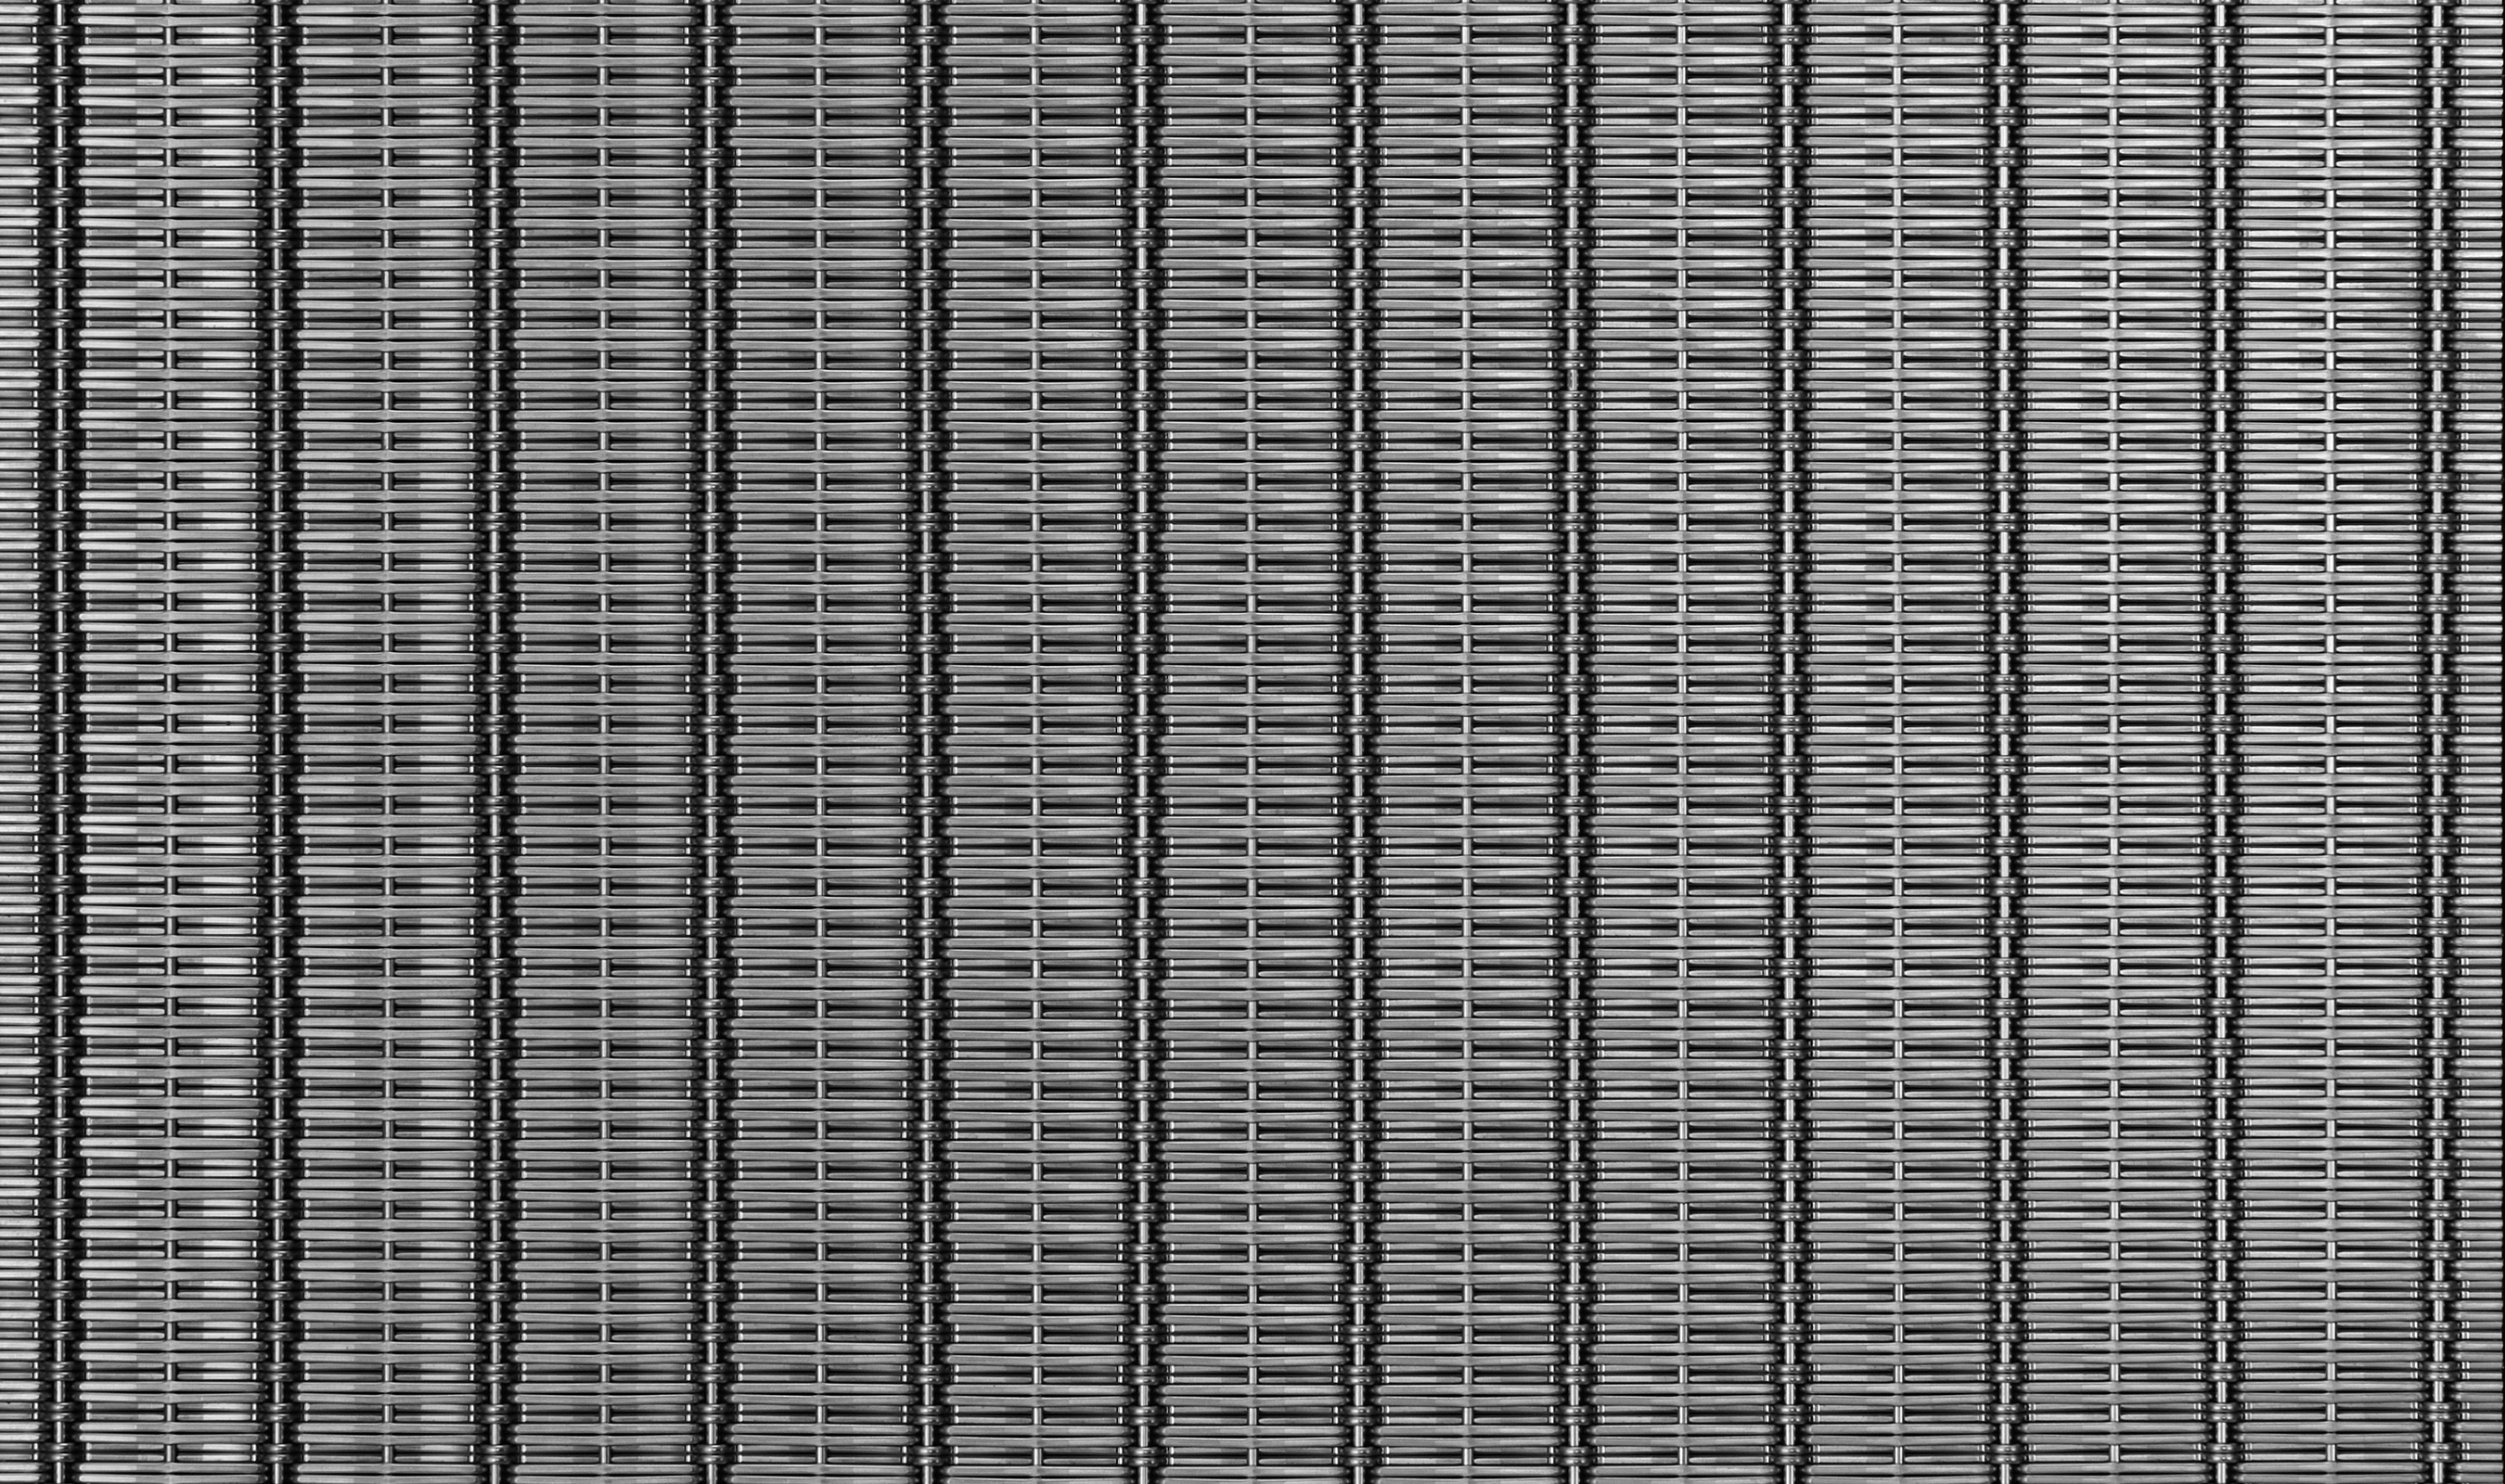 Banker Wire DF-14 Stainless Steel decorative wire mesh pattern